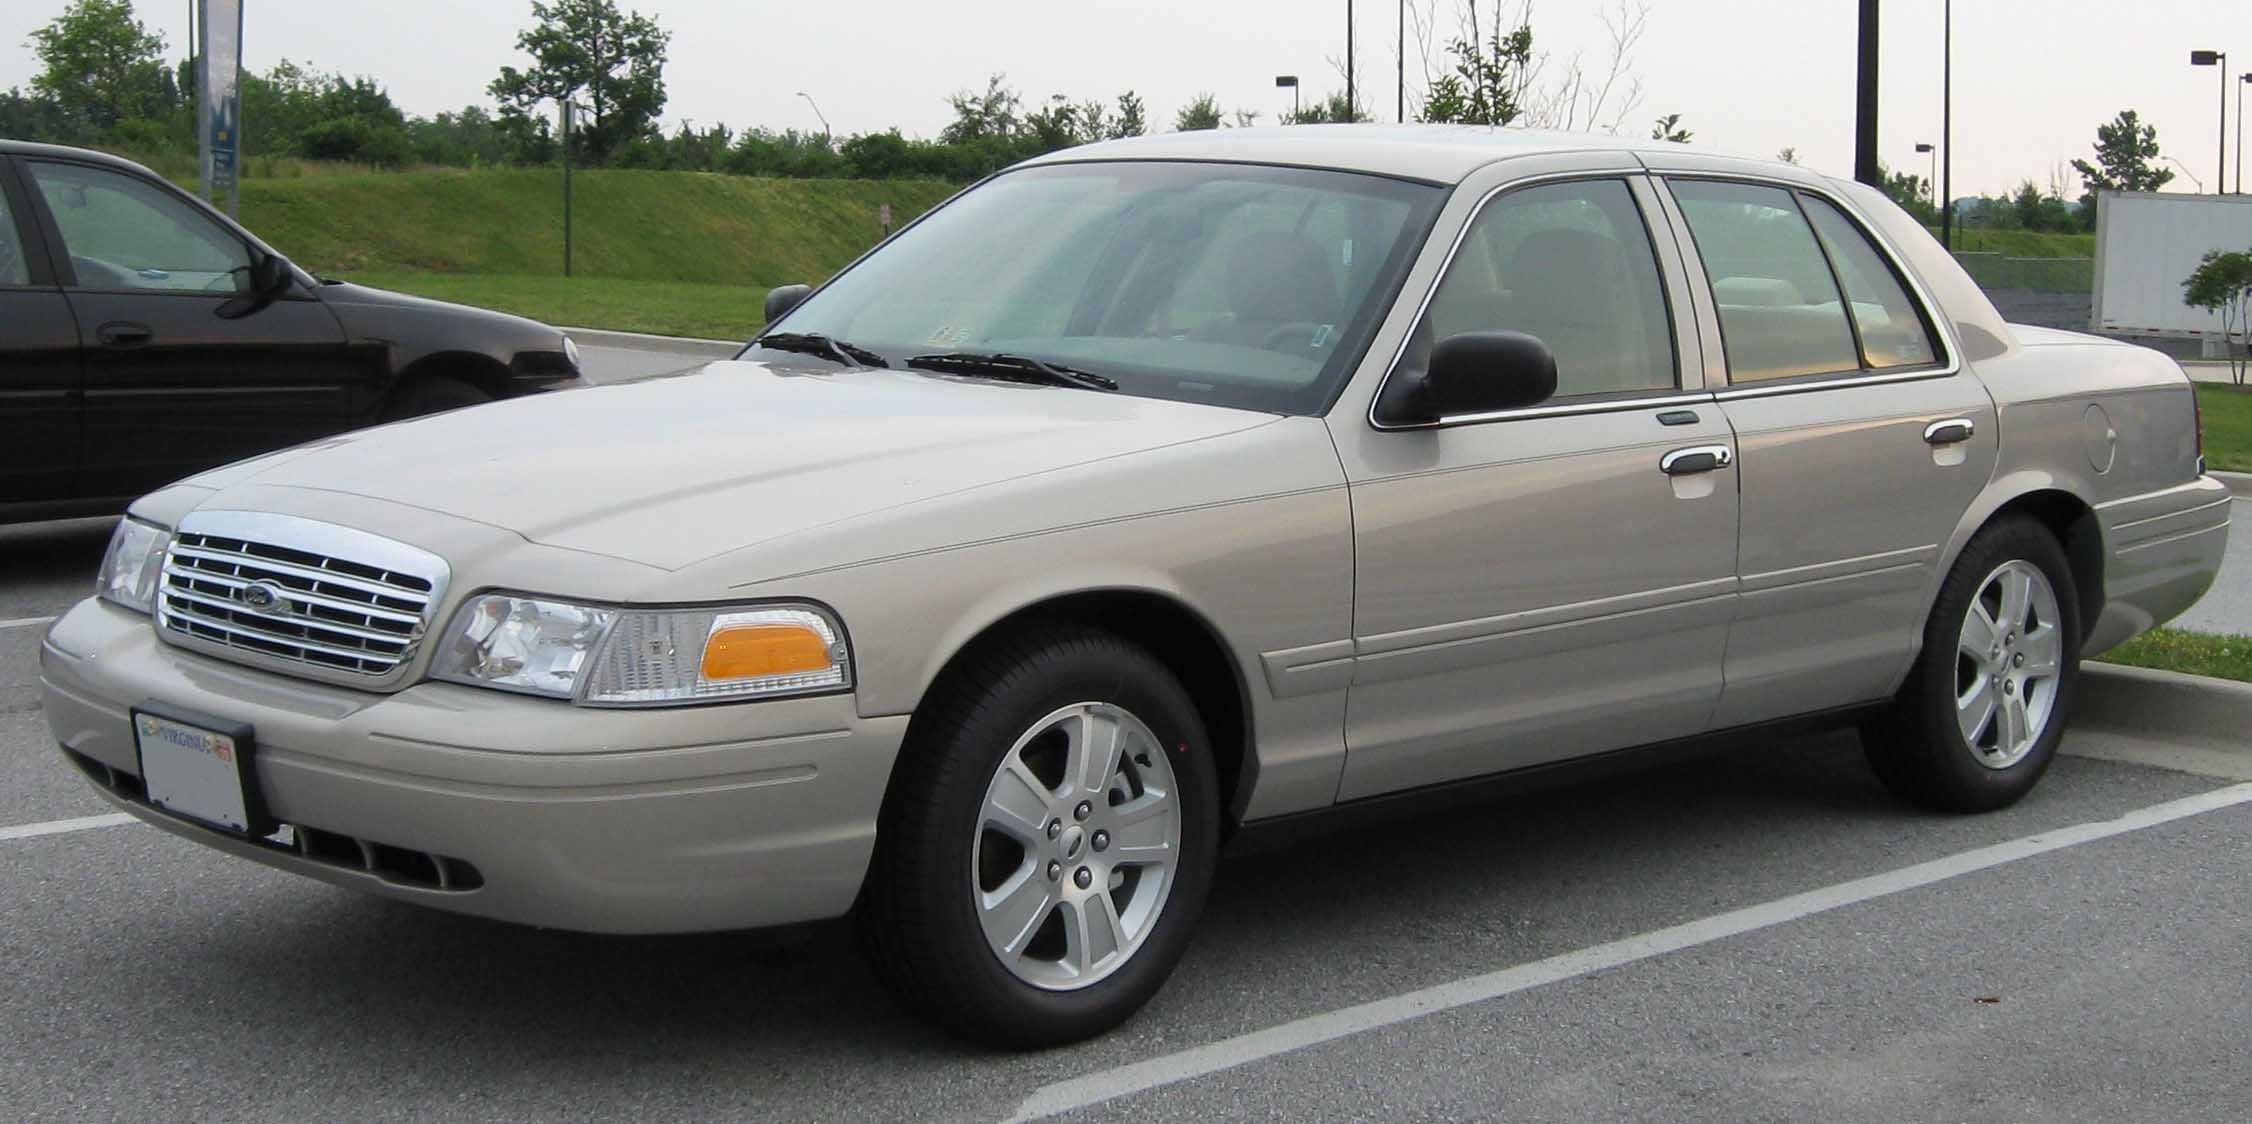 2010 Ford Crown Victoria #1